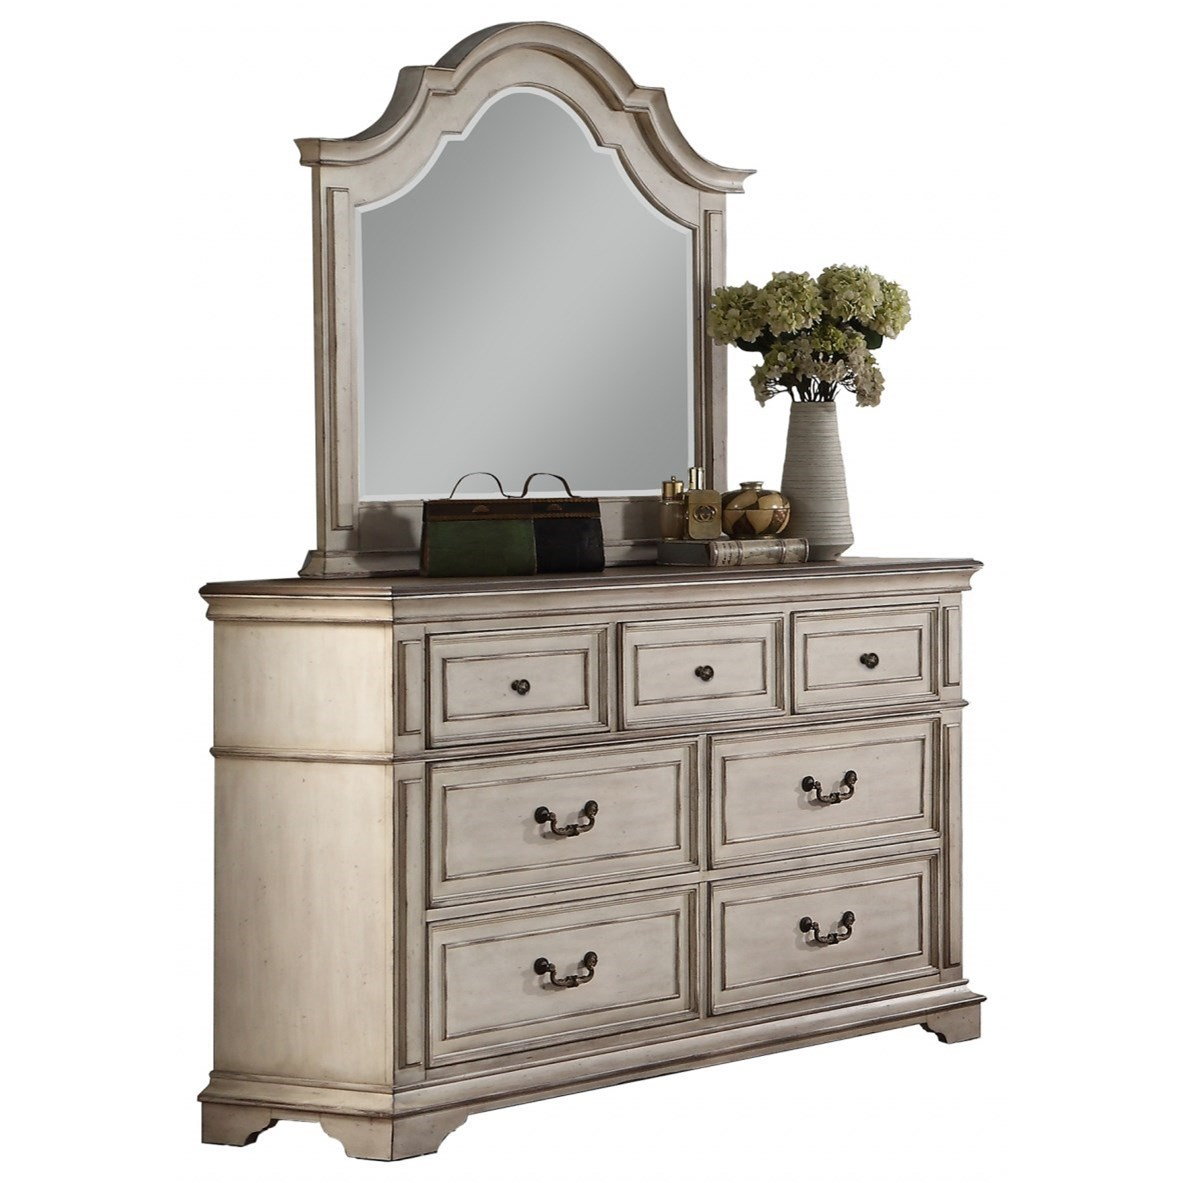 Anastasia Dresser and Mirror Set by New Classic at Beds N Stuff